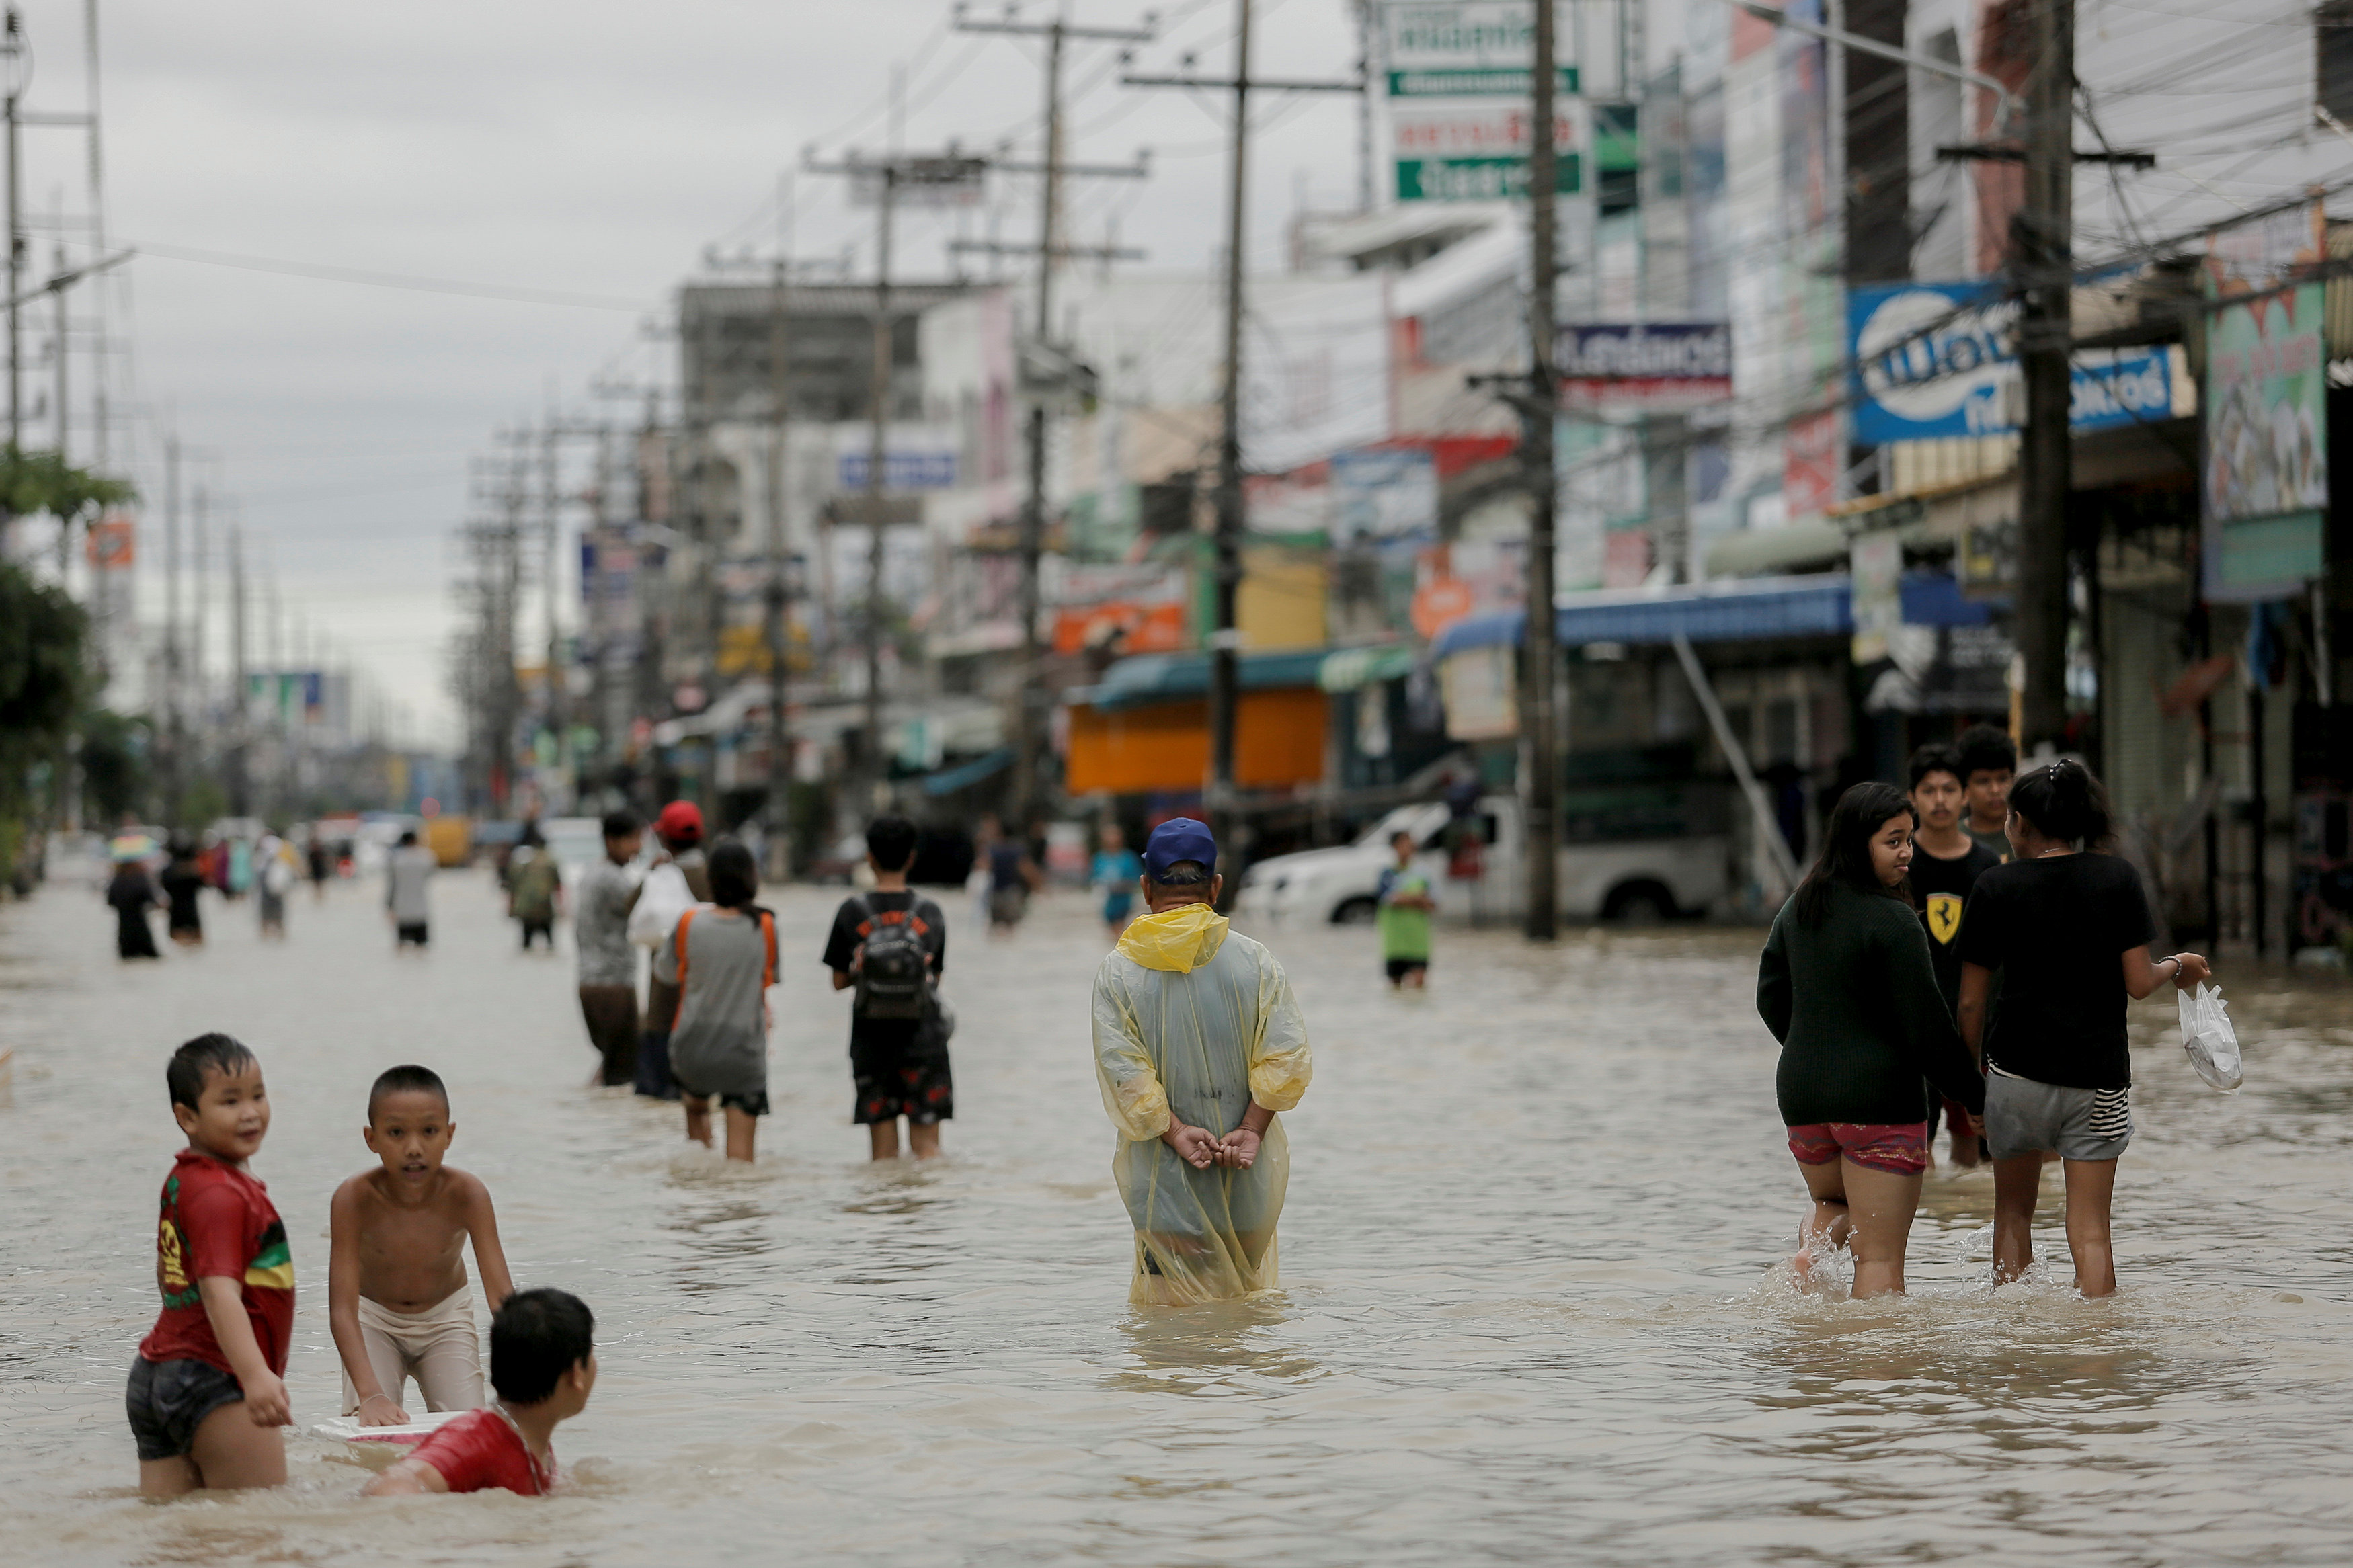 People in flood street in Thailand